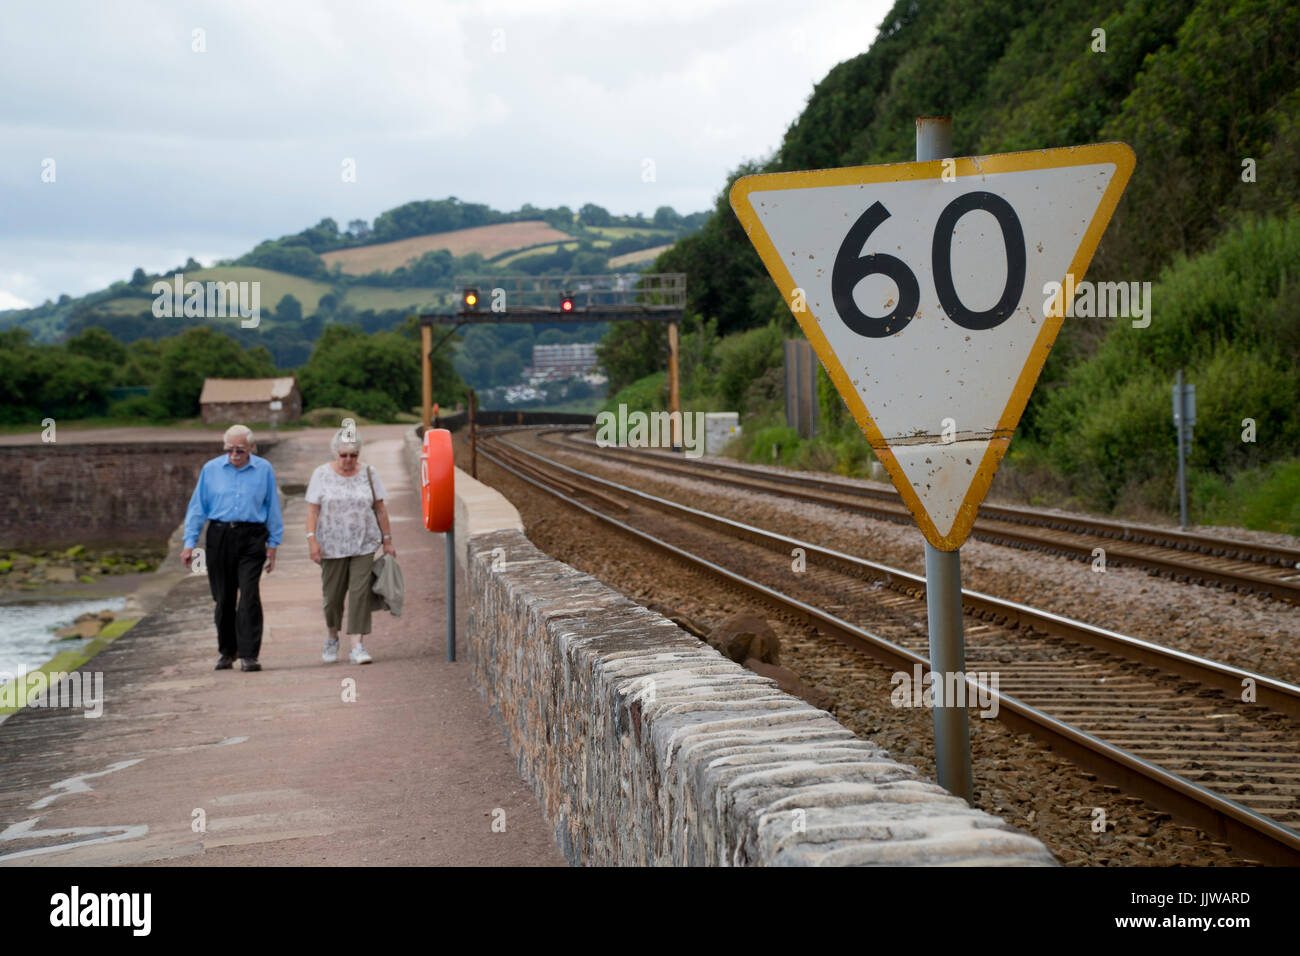 Elderly couple in the distance walking next to a rail line and a 60 mph speed sign for trains in the foreground, - Stock Image